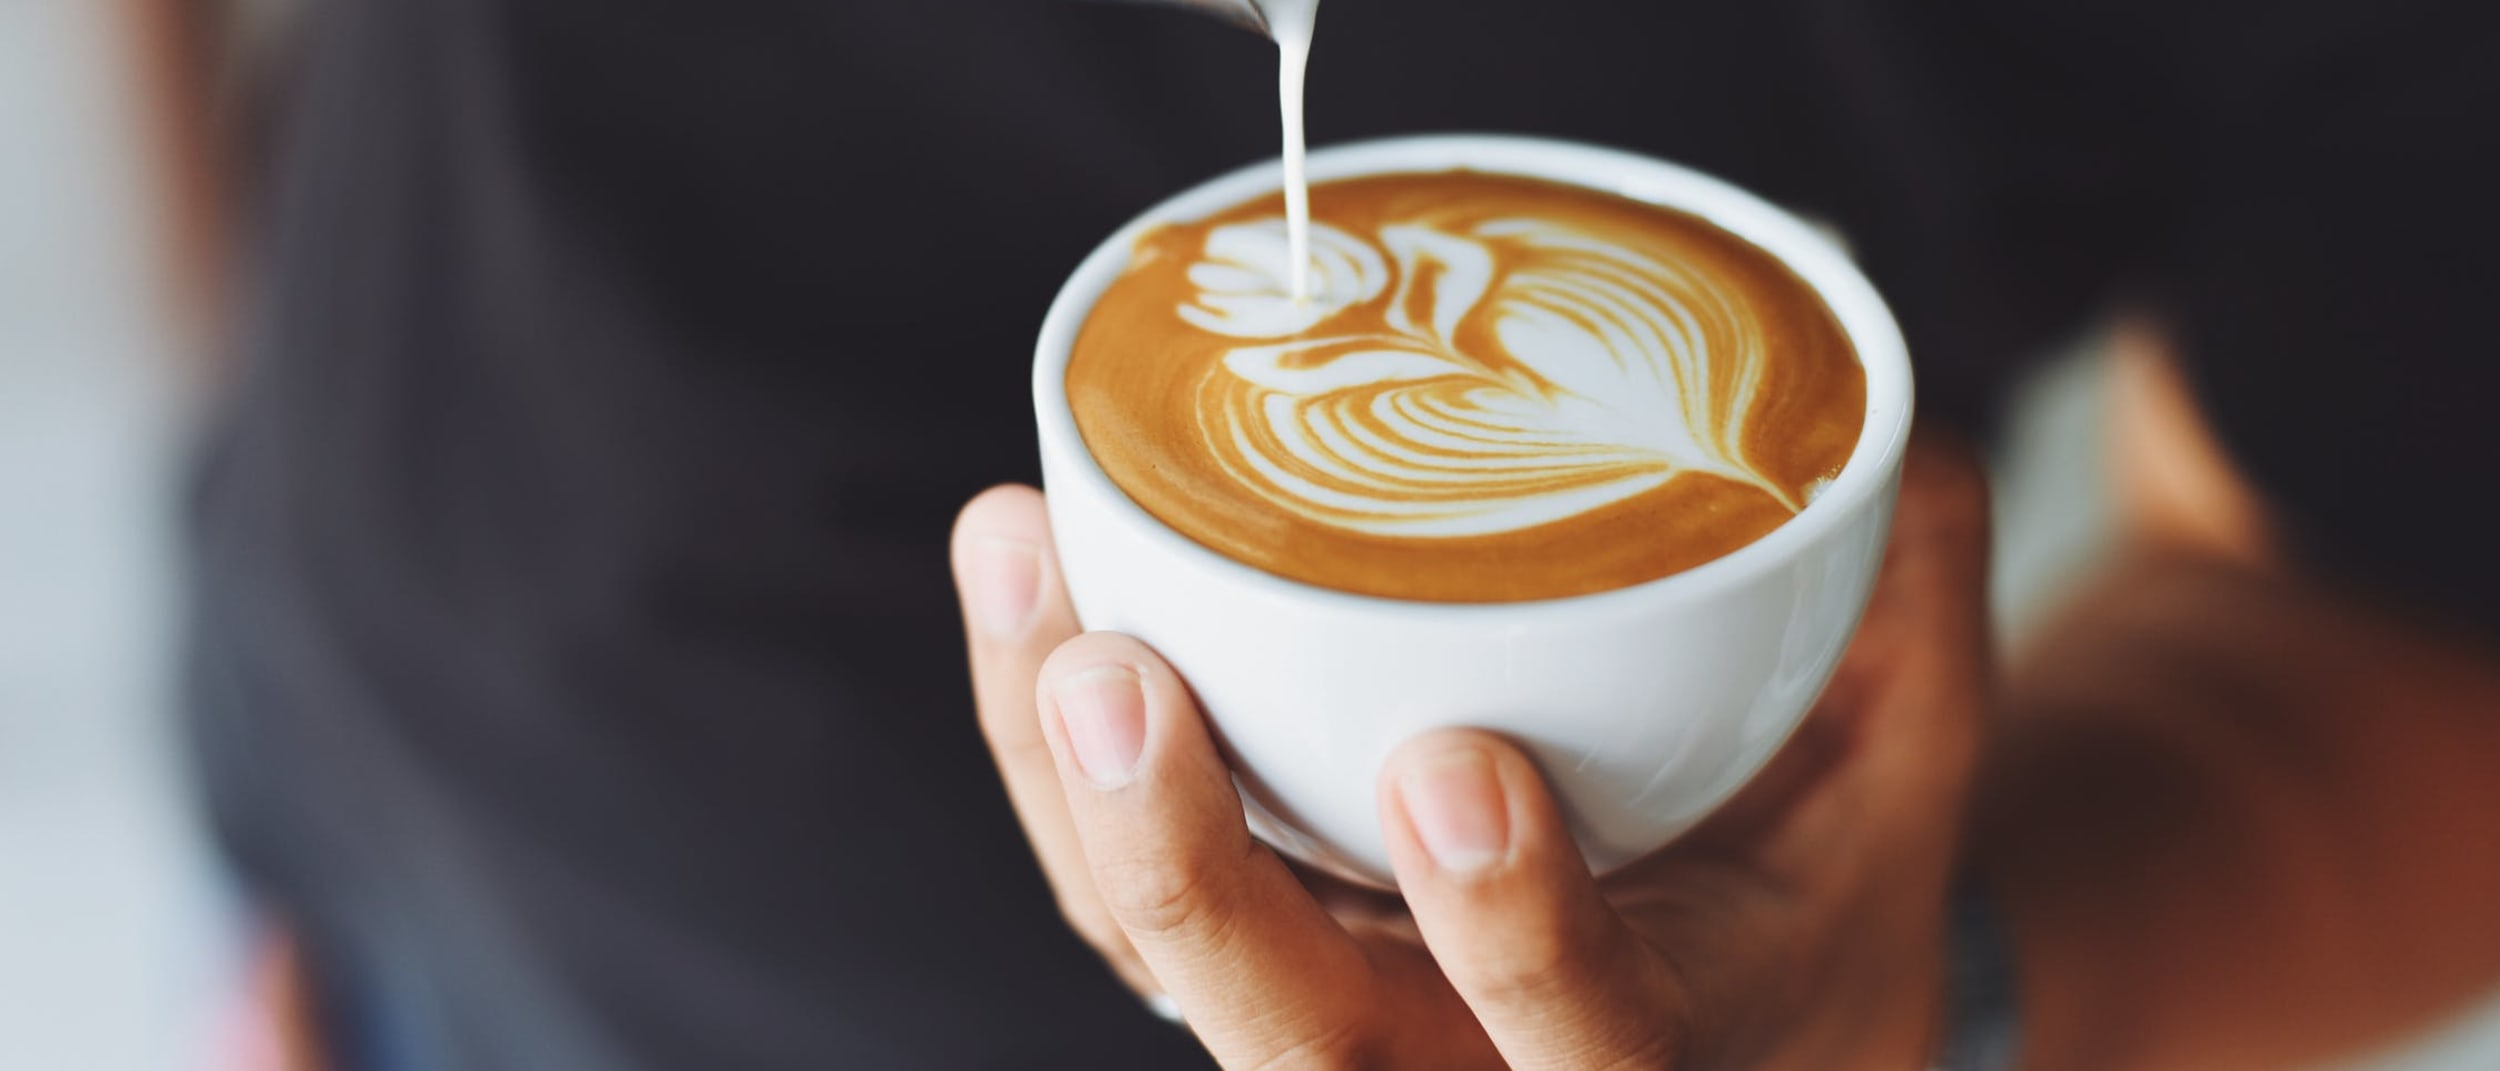 A Melbourne coffee icon has opened at Chermside